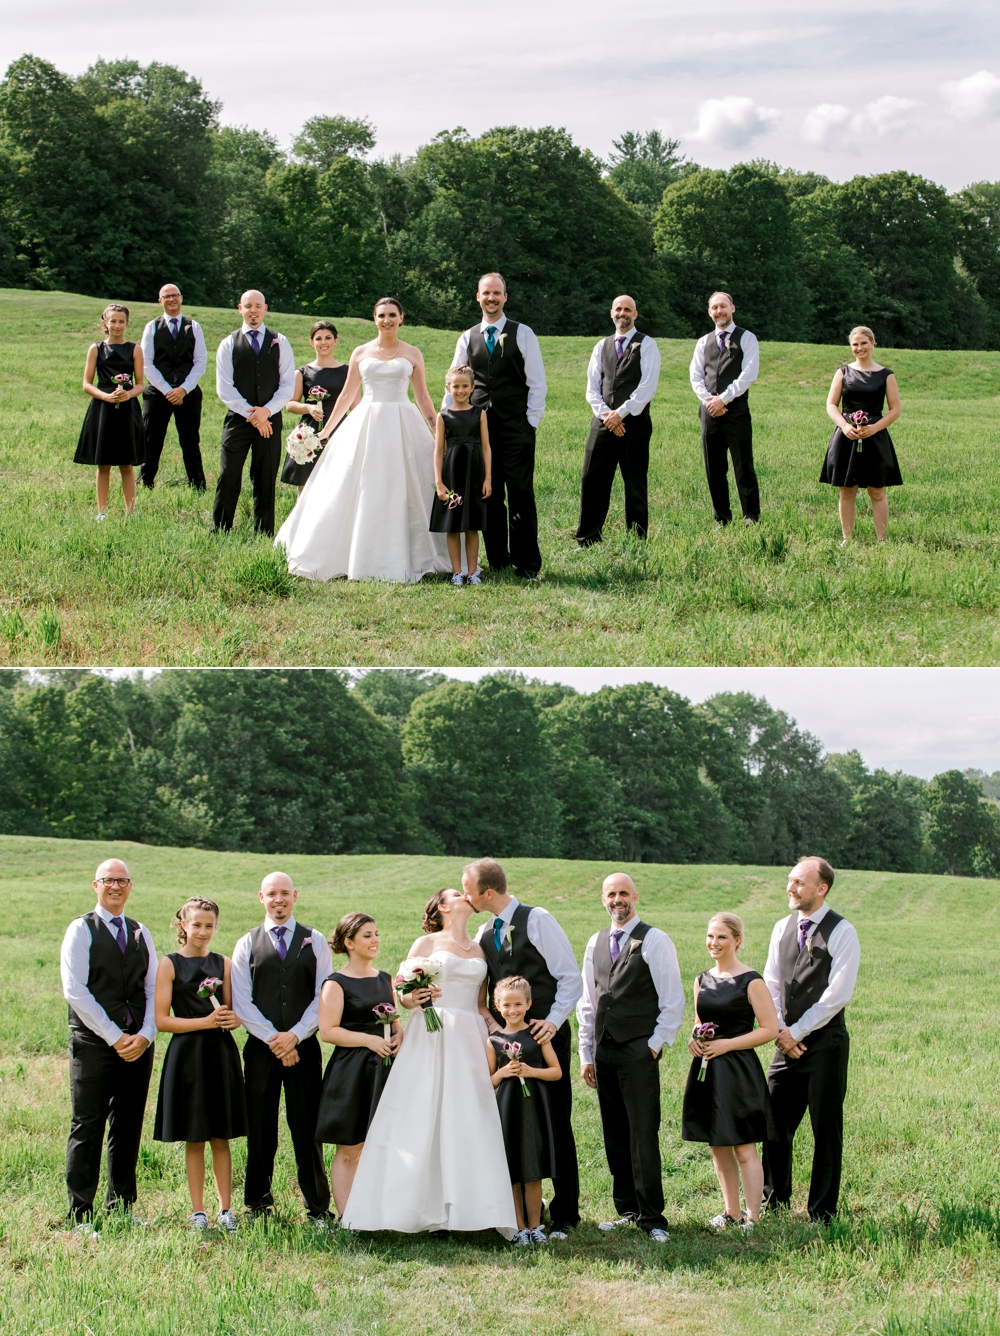 SomerbyJonesPhotography__VermontWedding_VTWedding_BackyardVermontWedding_0018.jpg